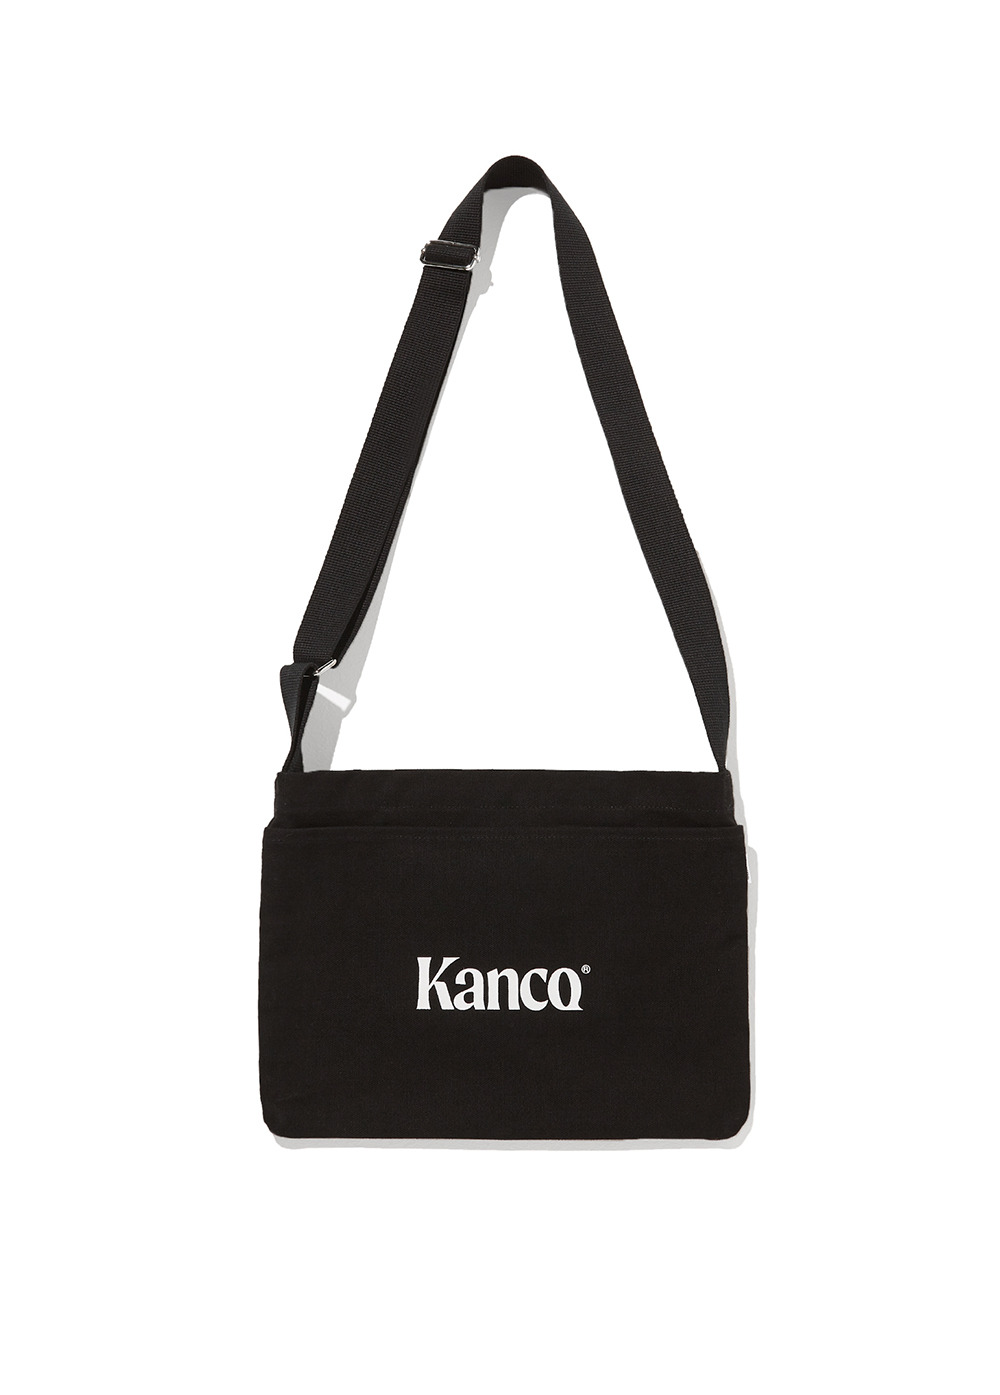 KANCO CANVAS 3WAY CROSS BAG black